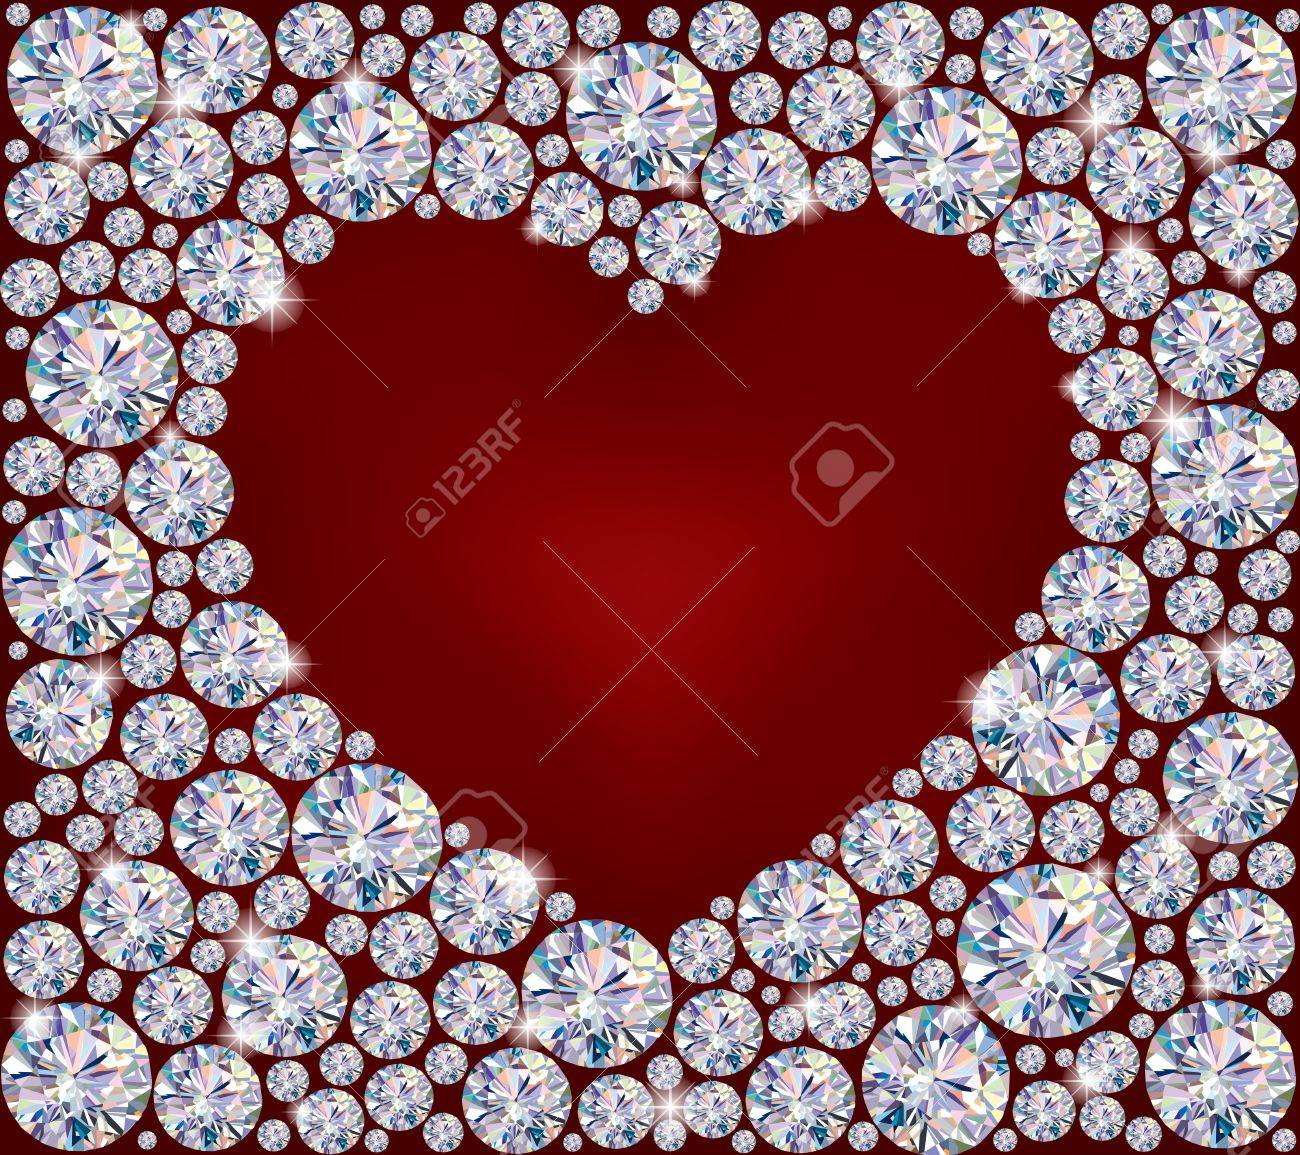 Heart of Diamonds.Illustration contains transparent object. Stock Vector - 16259728